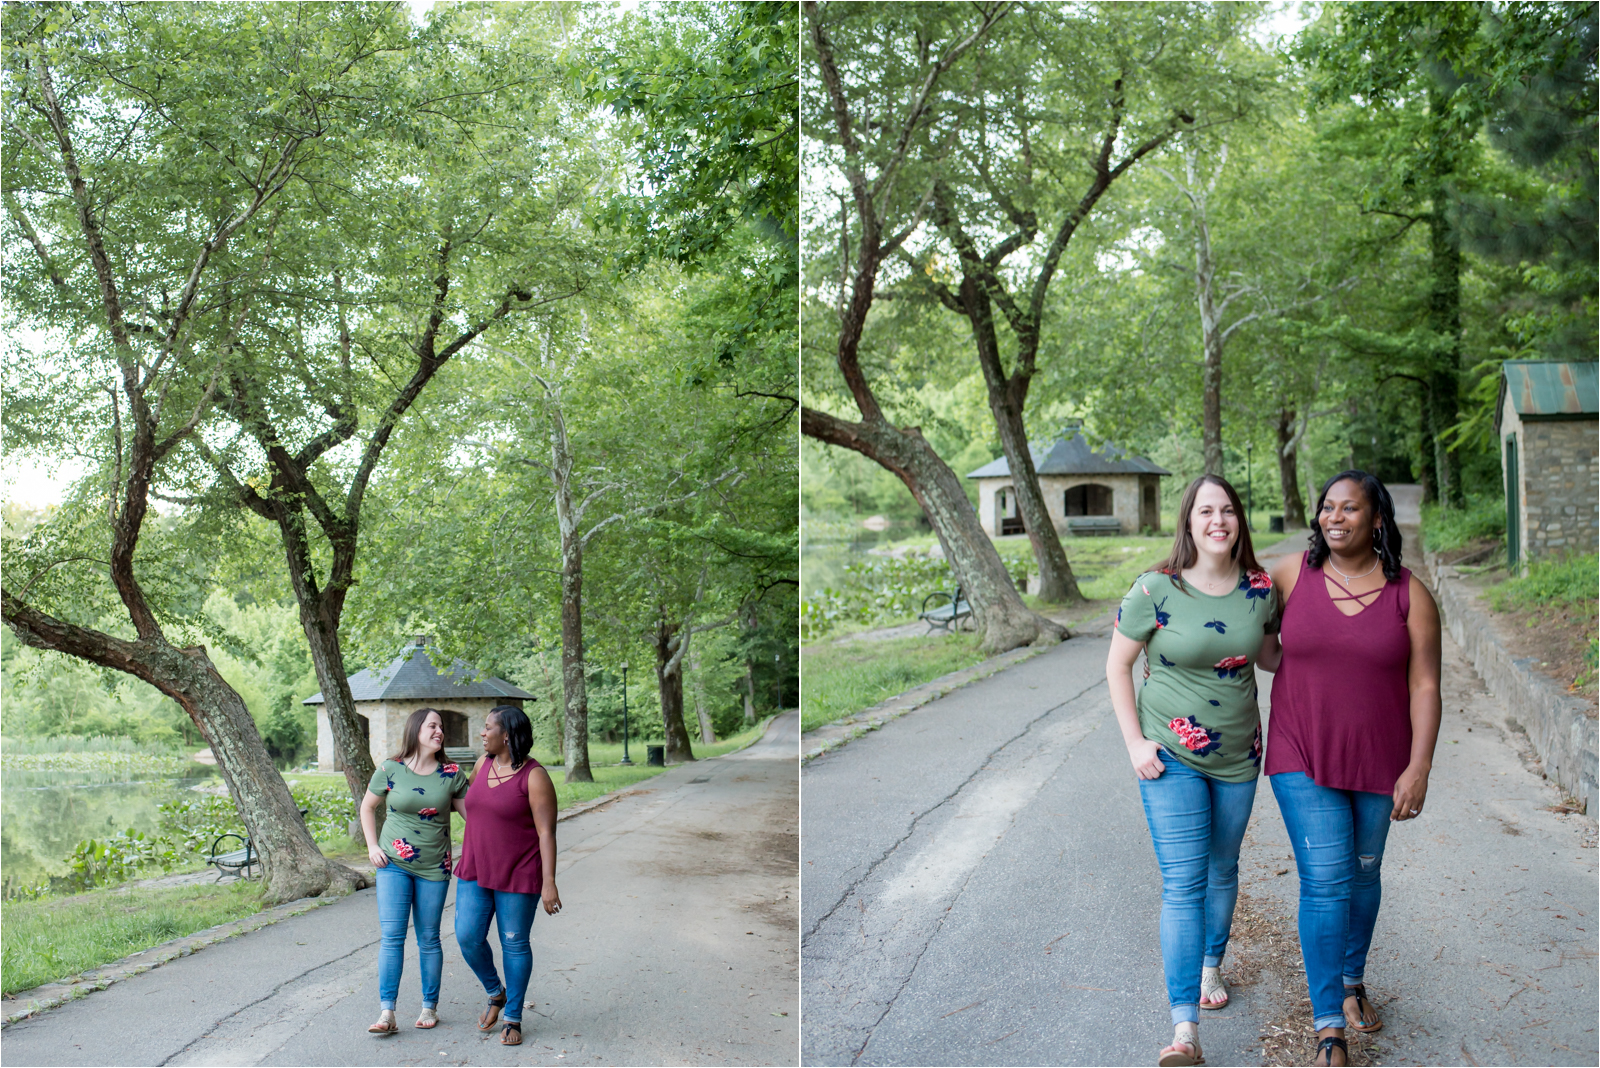 engagement-session-forest-hill-park-lesbian-gay-wedding-equality-interracial-marriage-lake-lakeside-stone-house-rva-richmond-virginia-focus-on-joy-photography-12